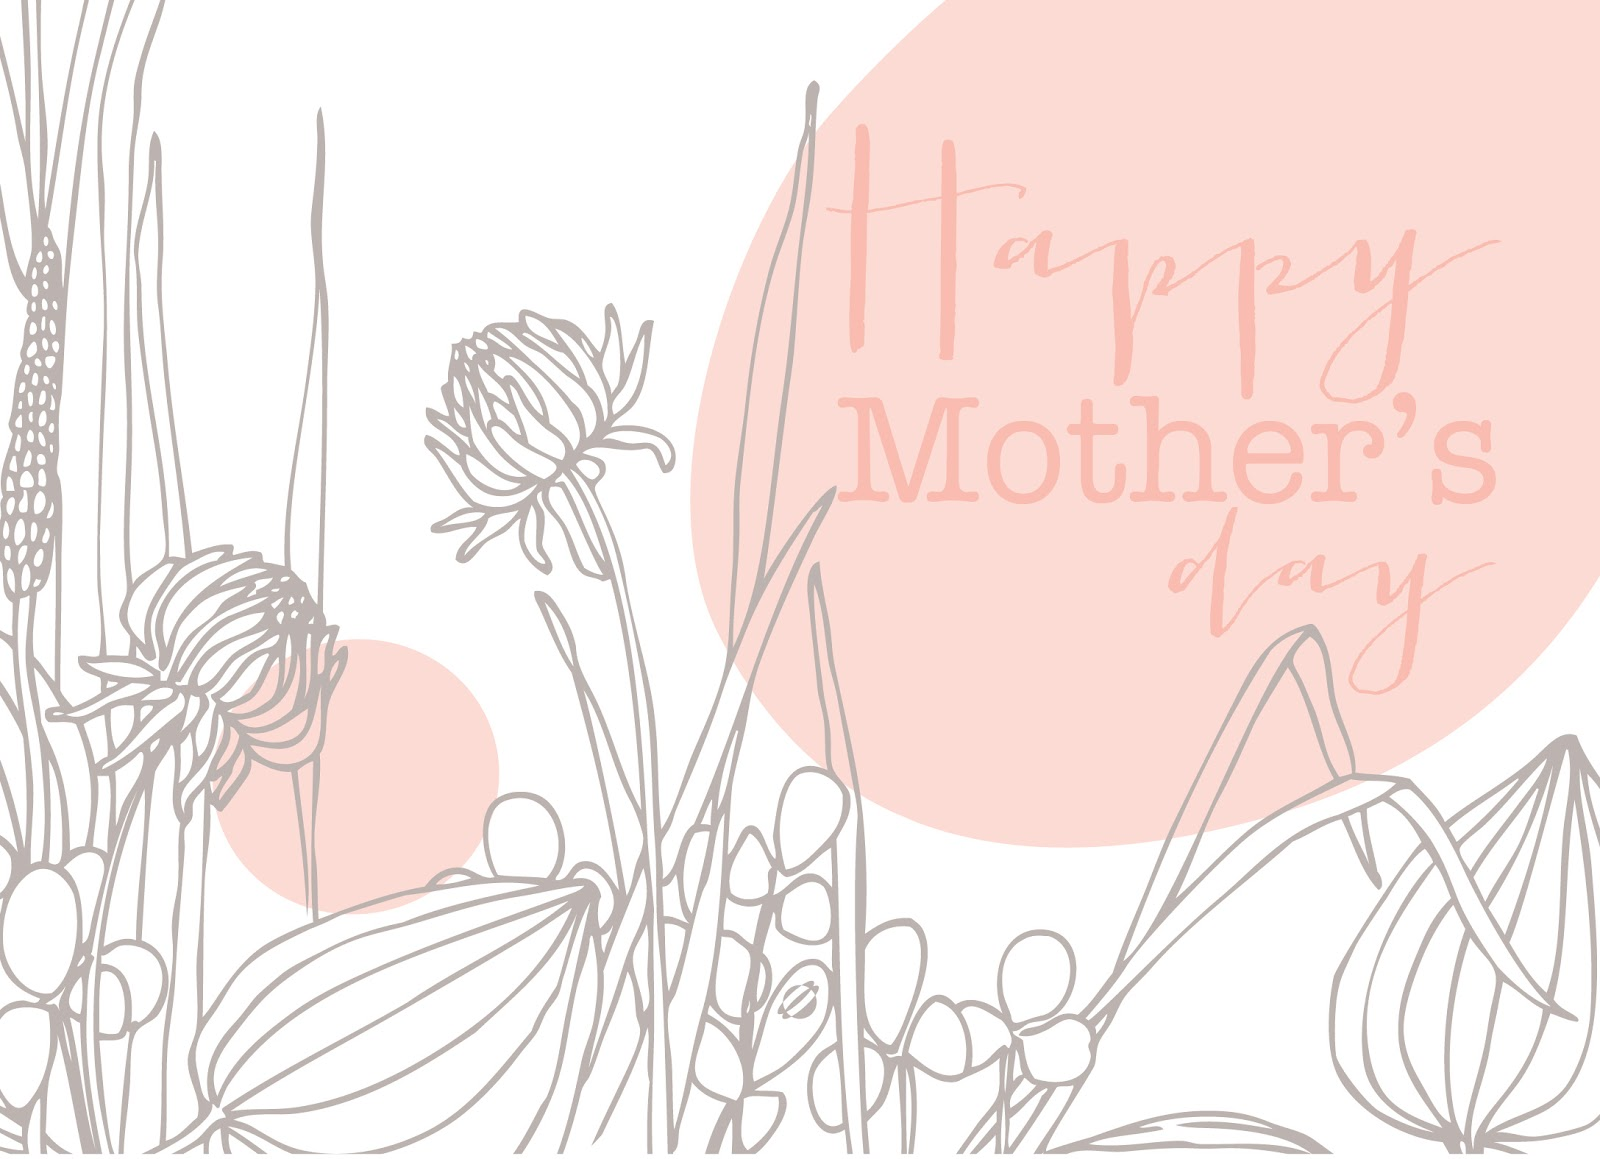 LostBumblebee ©2014 Mother's Day Card 5x7 Free Printable Personal use